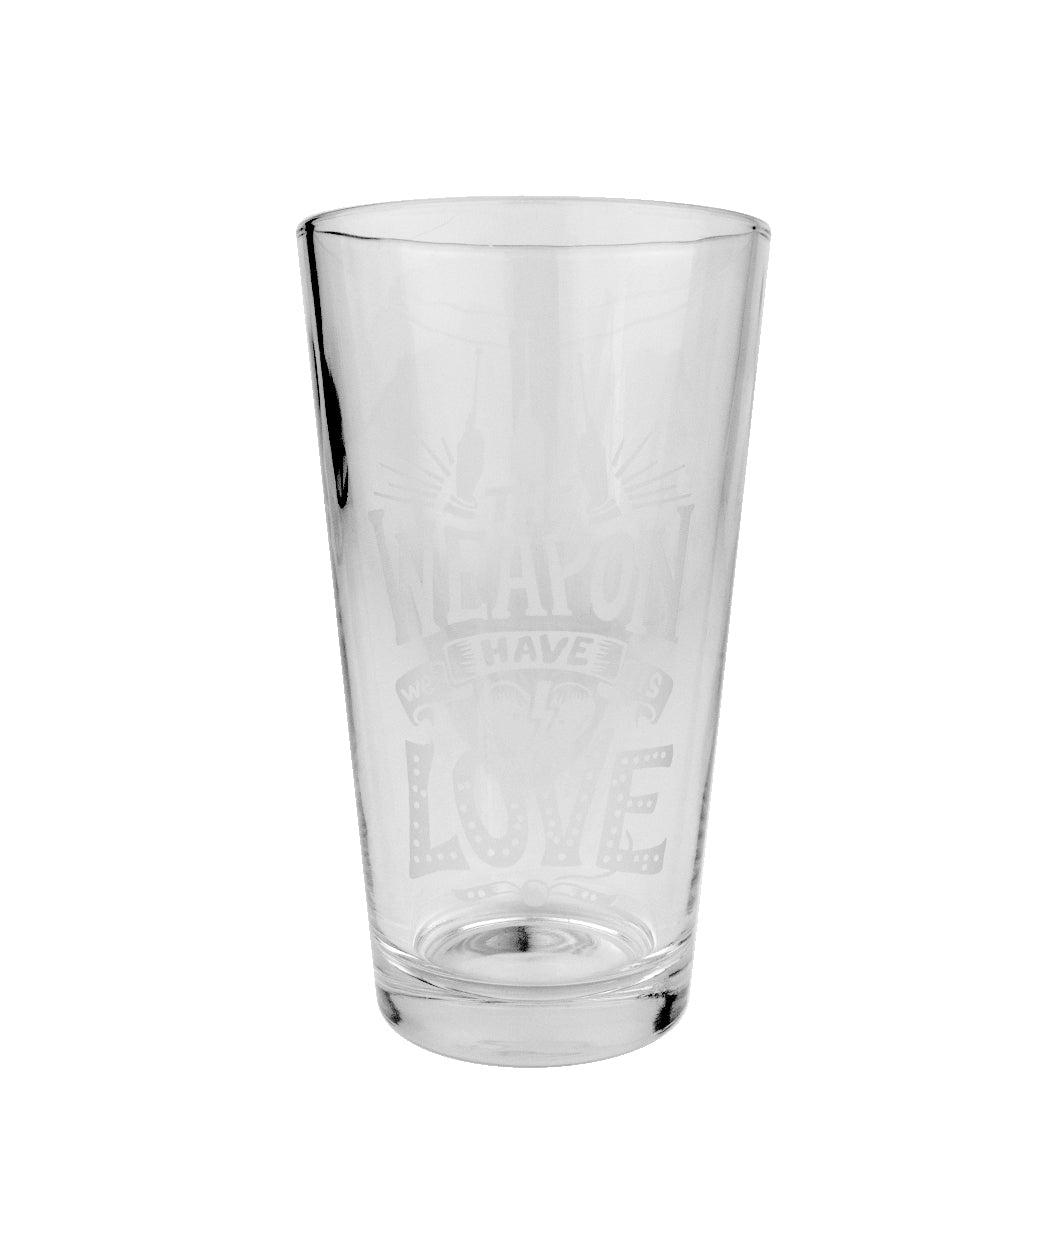 The Weapon Is Love Pint Glass